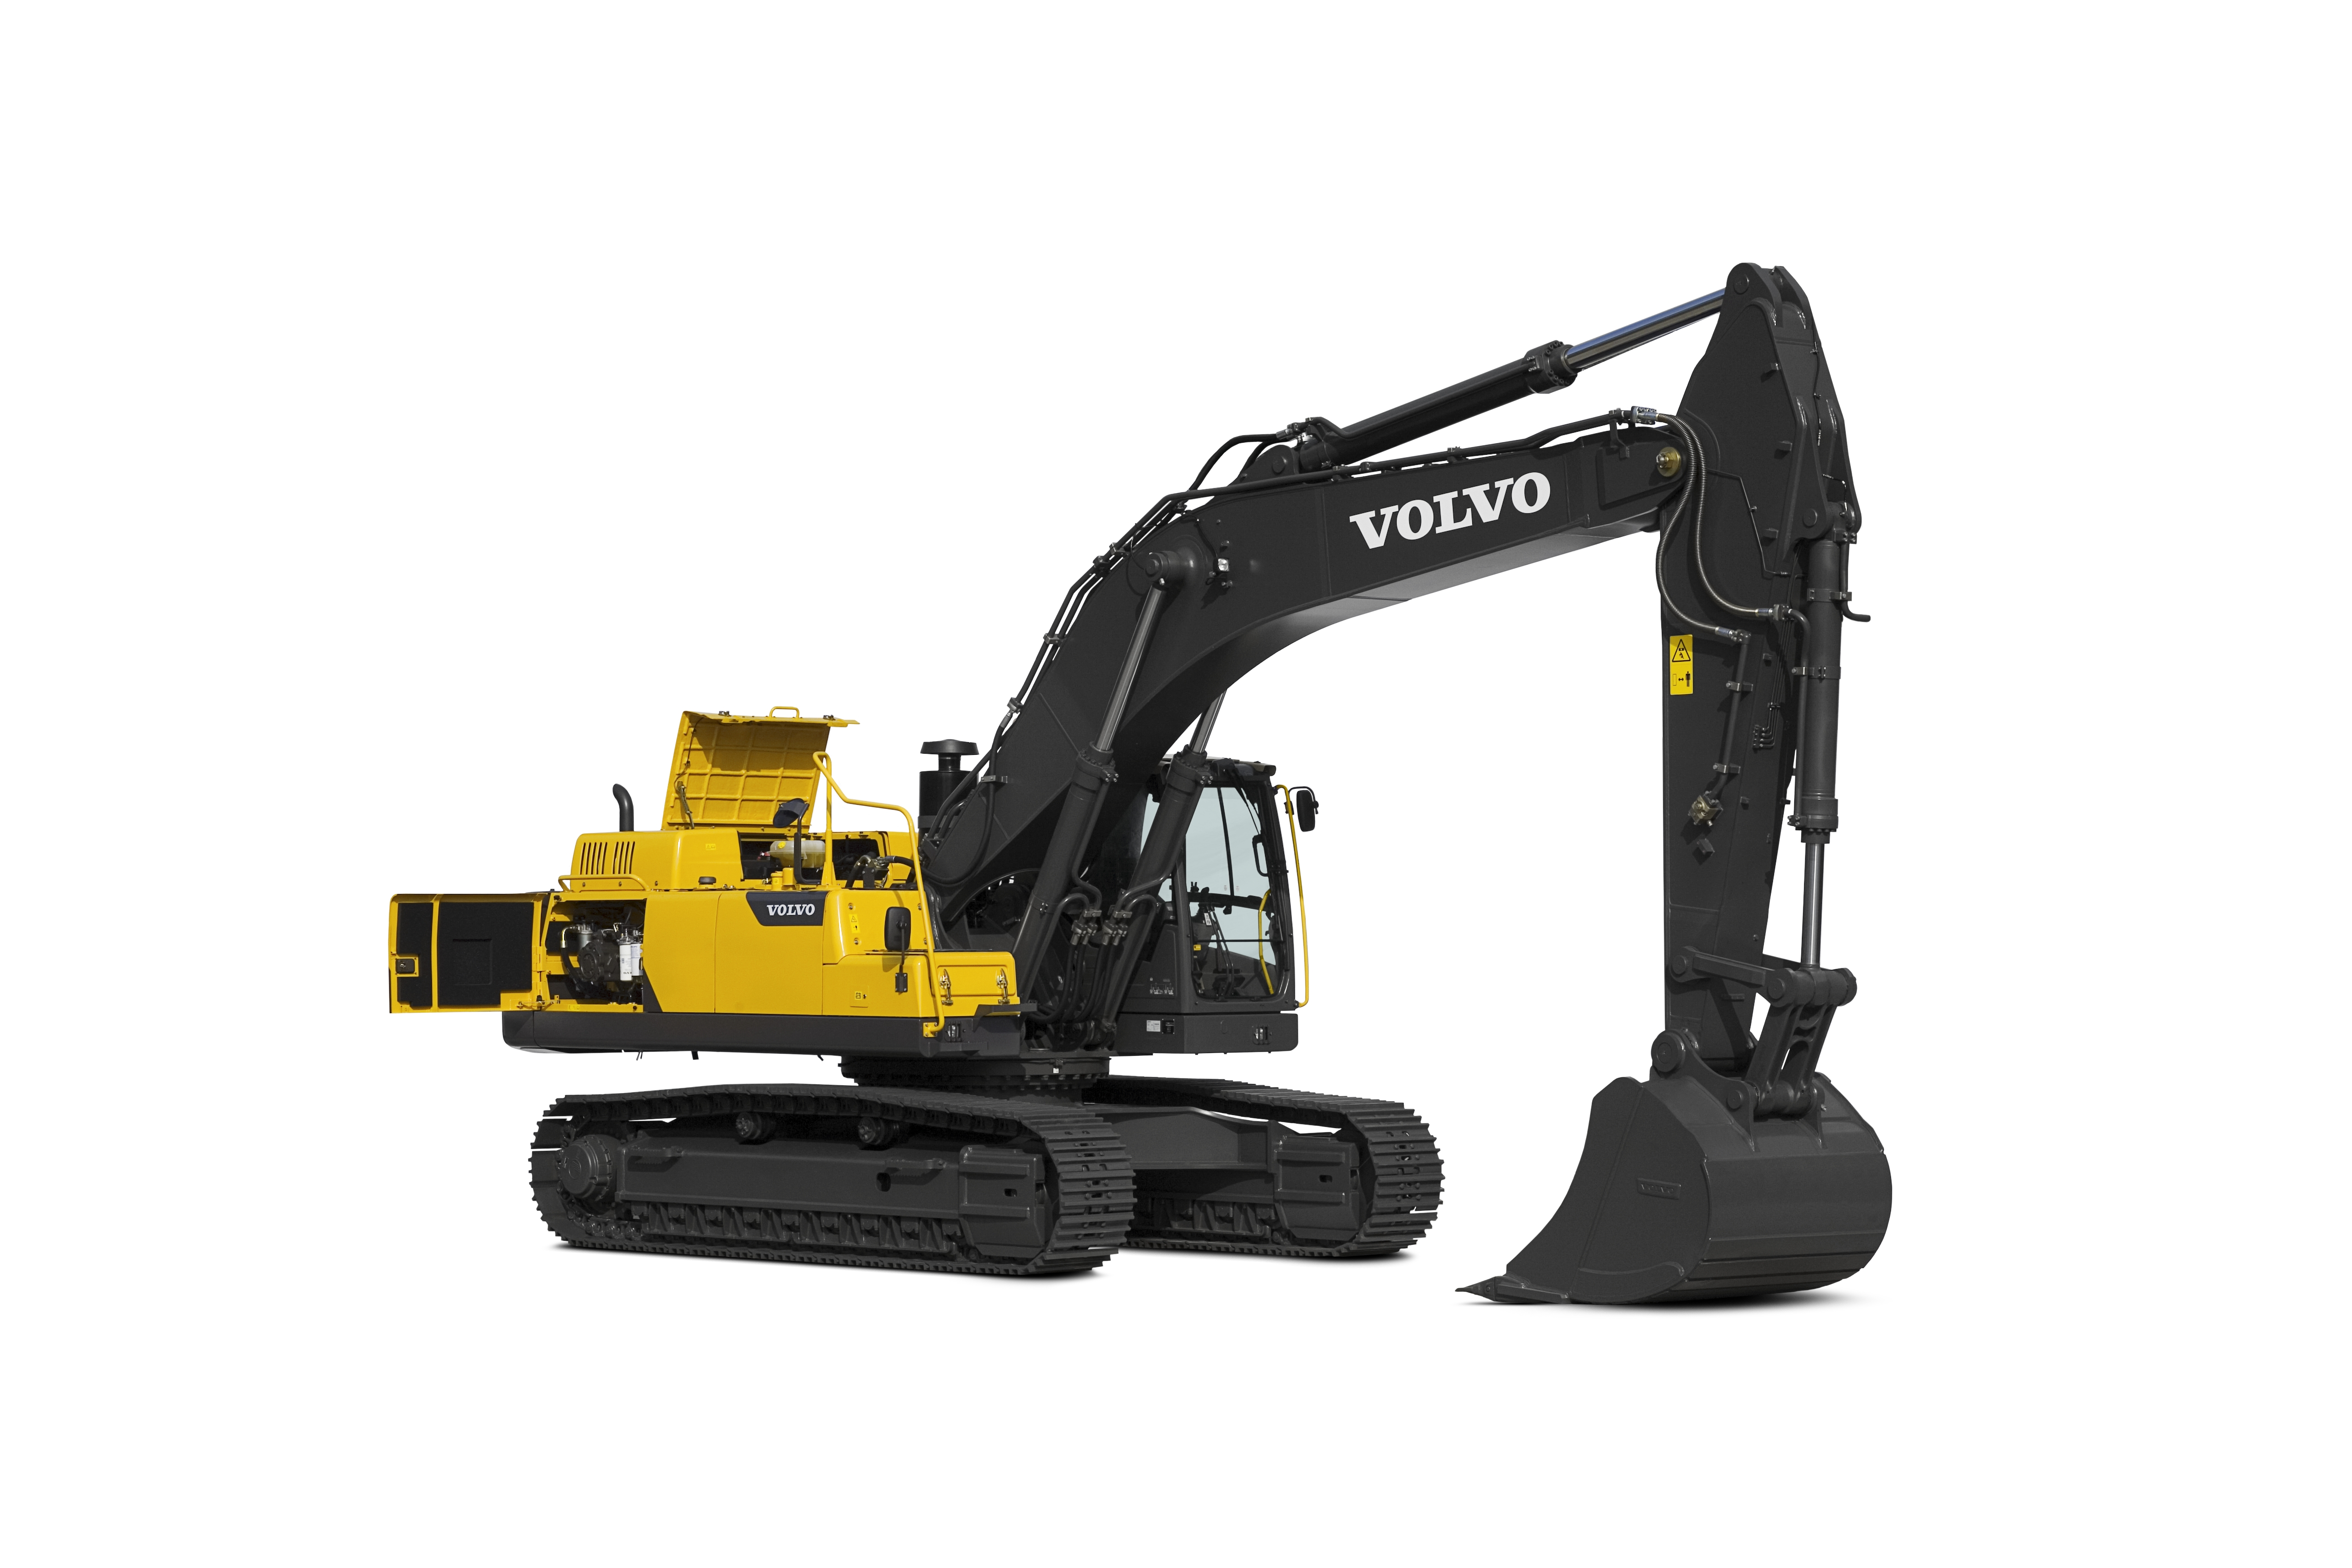 supply volvo equipment heavy backhoe miami parts excavator fl